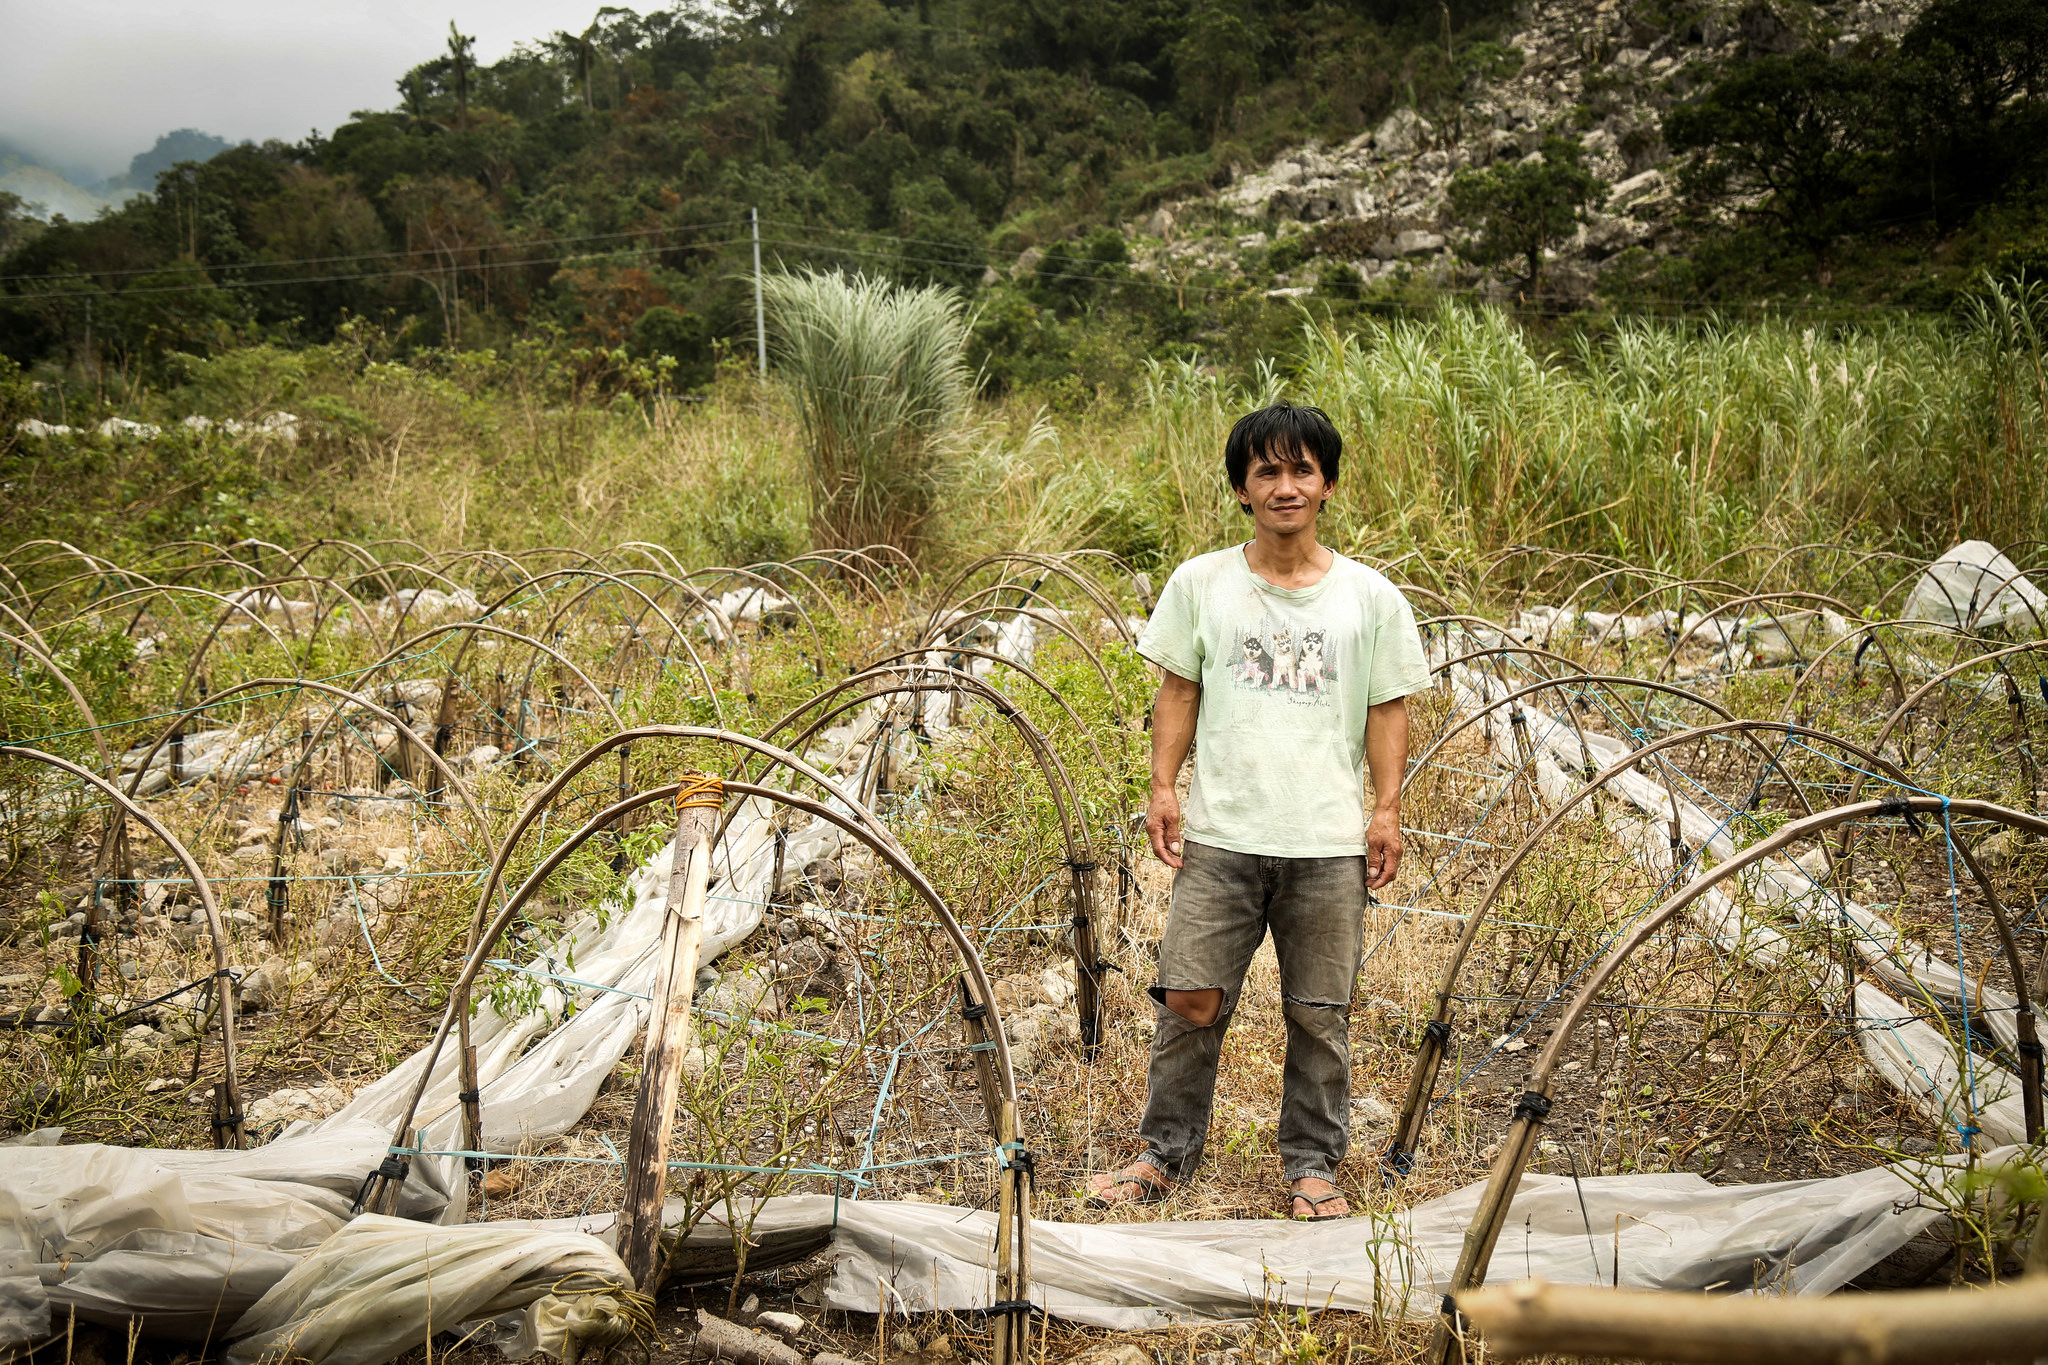 Orland lost his home and his only source of income. Photo by: Syrel Espineda/NASSA/Caritas Philippines